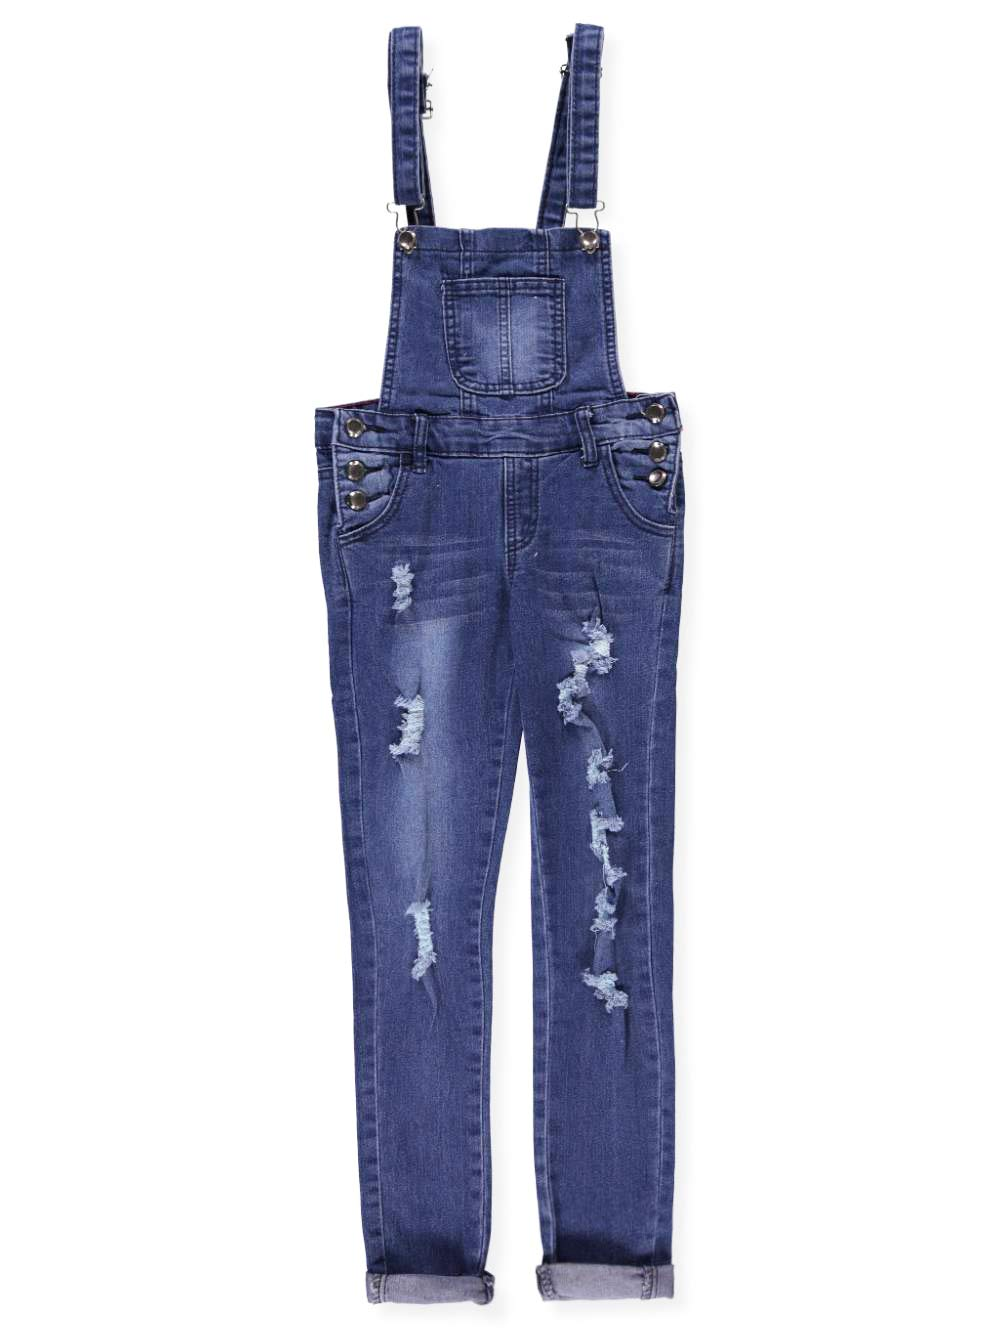 Teen G's Big Girls' Skinny Overalls - Medium Blue, 14